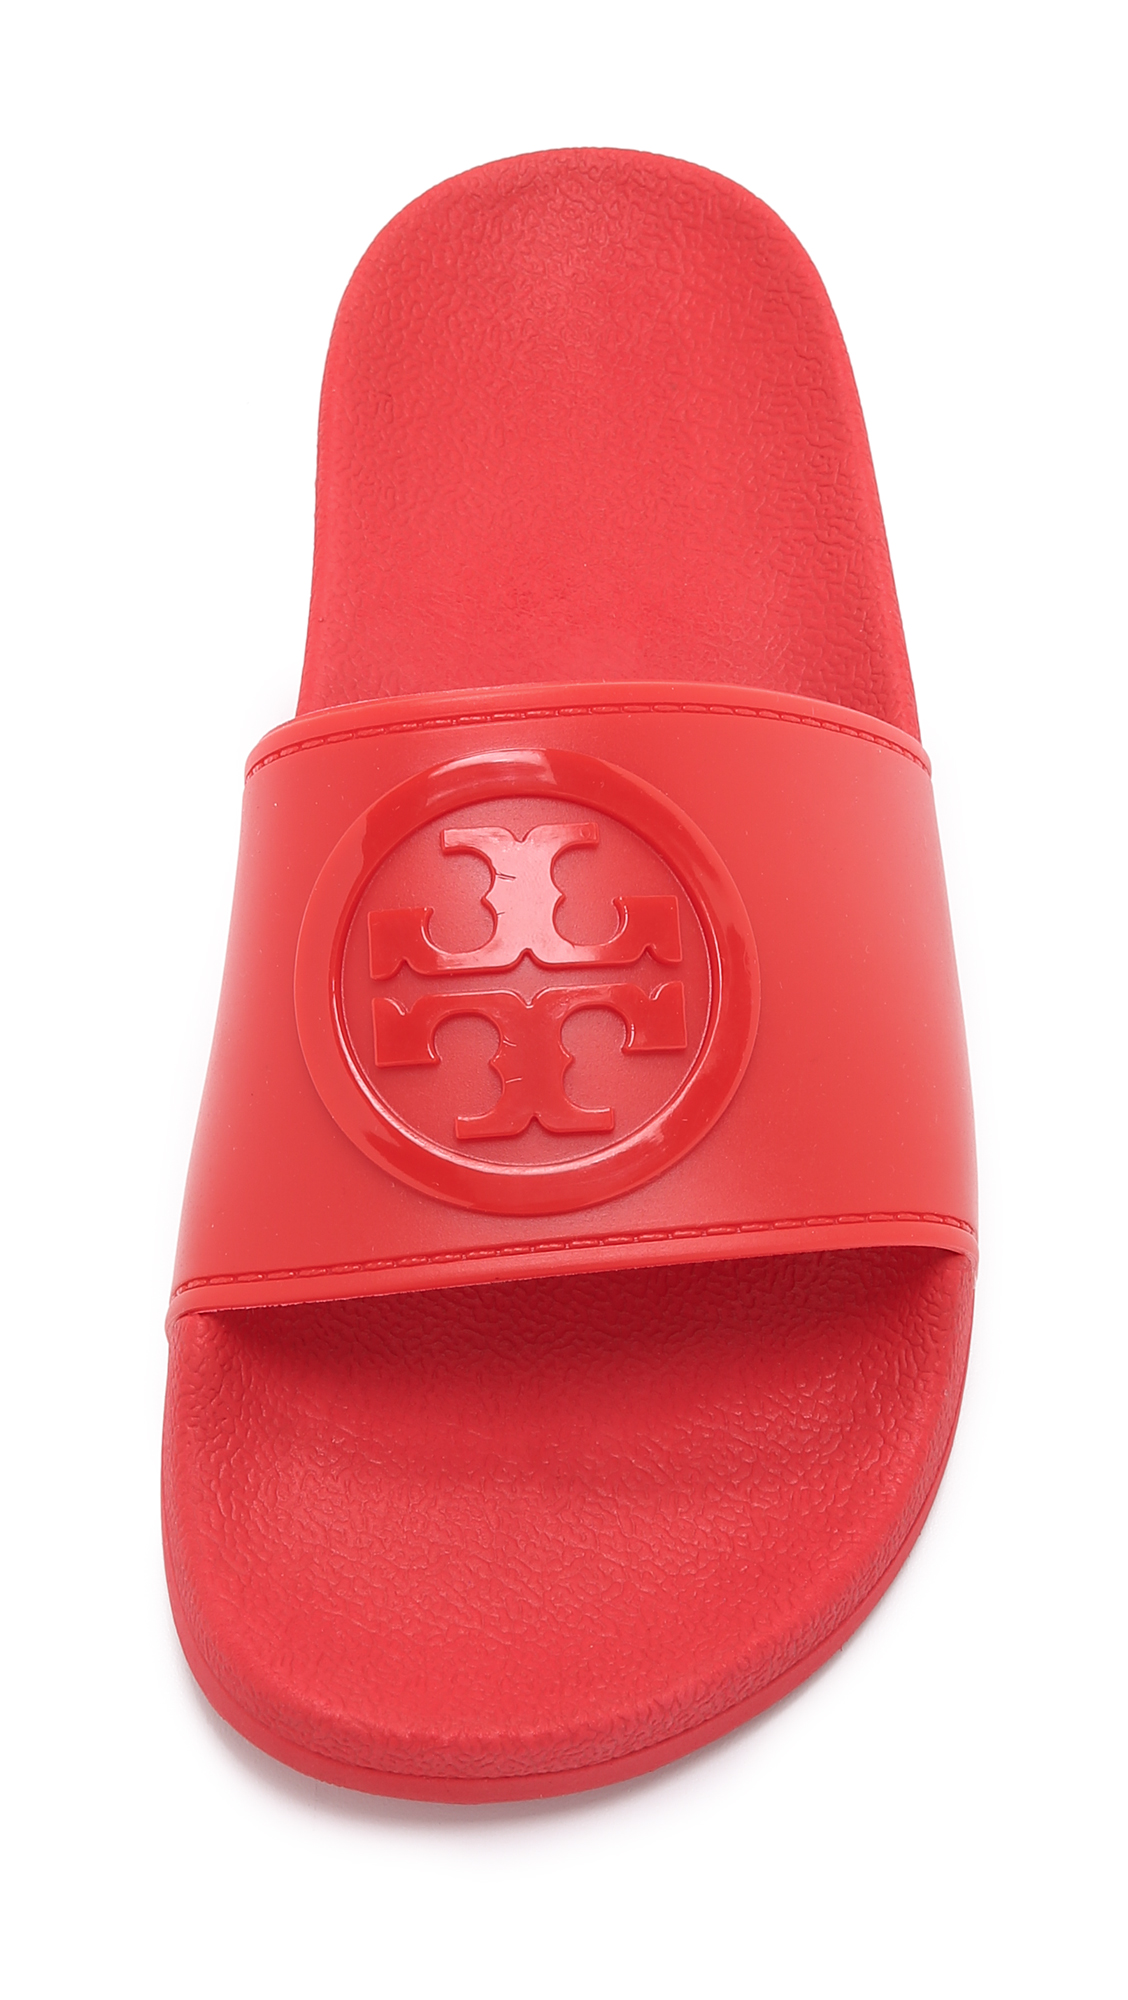 487132920783 Tory Burch Jelly Flat Slides